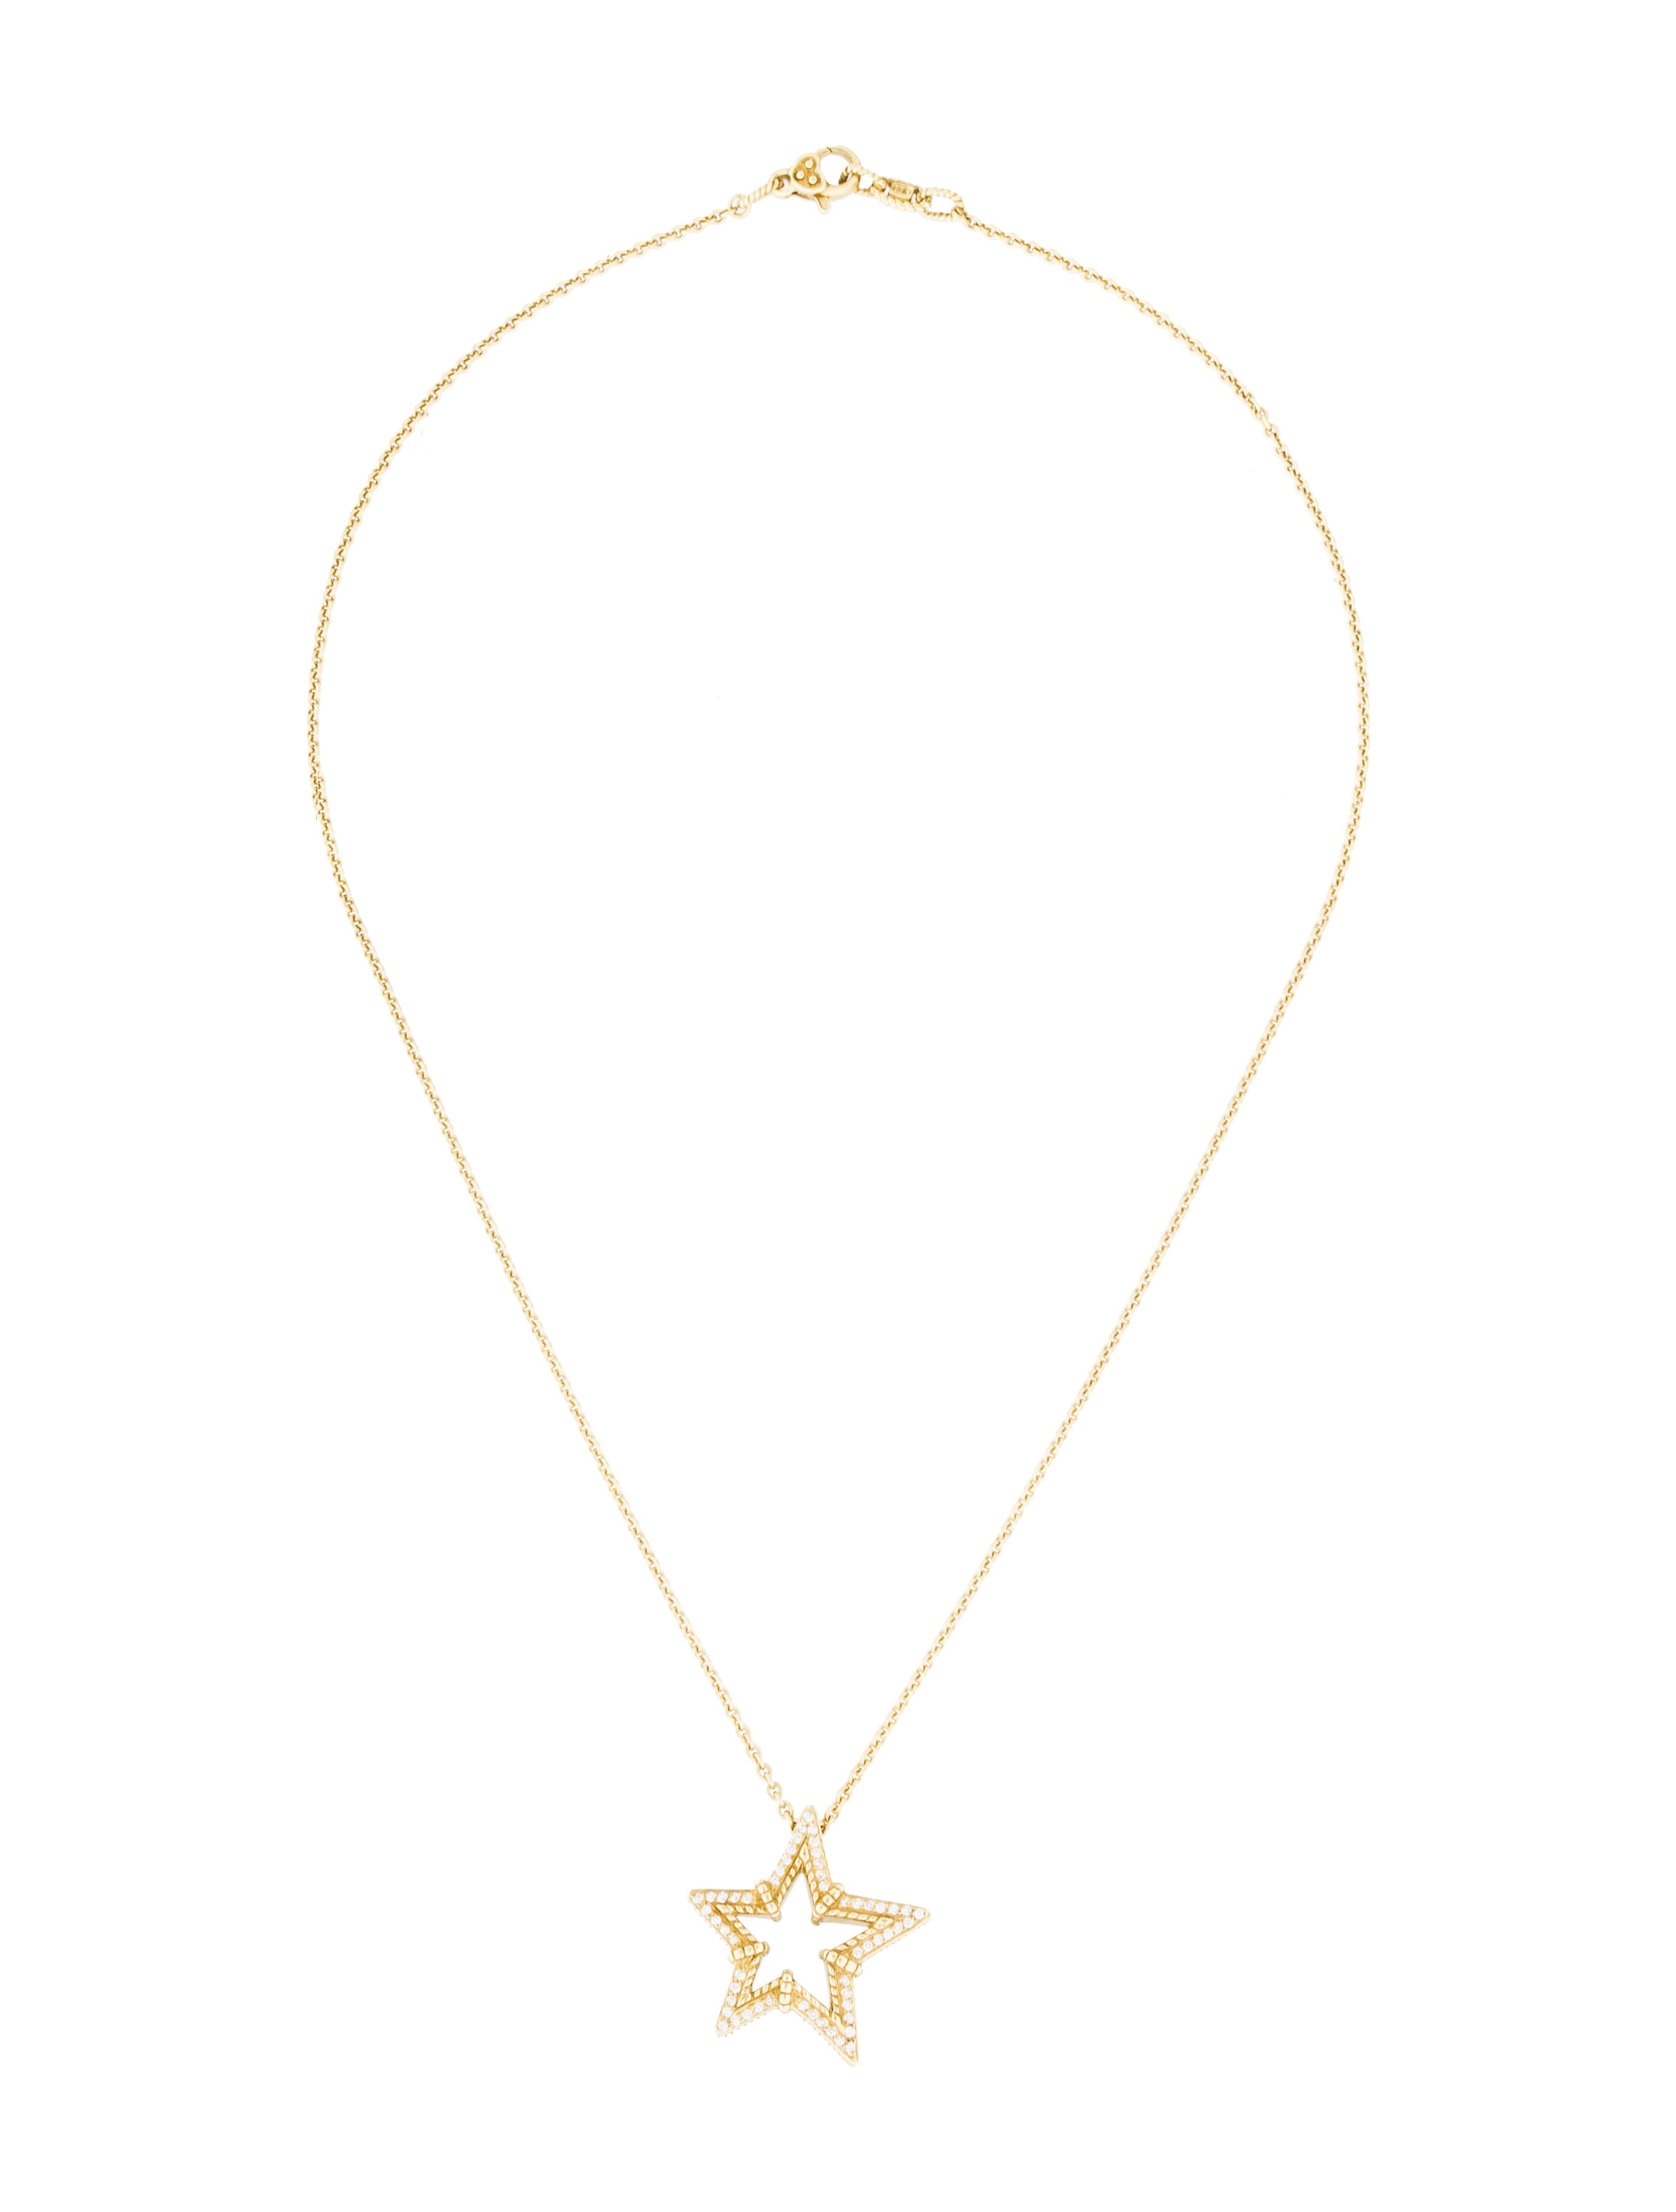 Judith Ripka 18K Diamond Star Pendant Necklace Necklaces